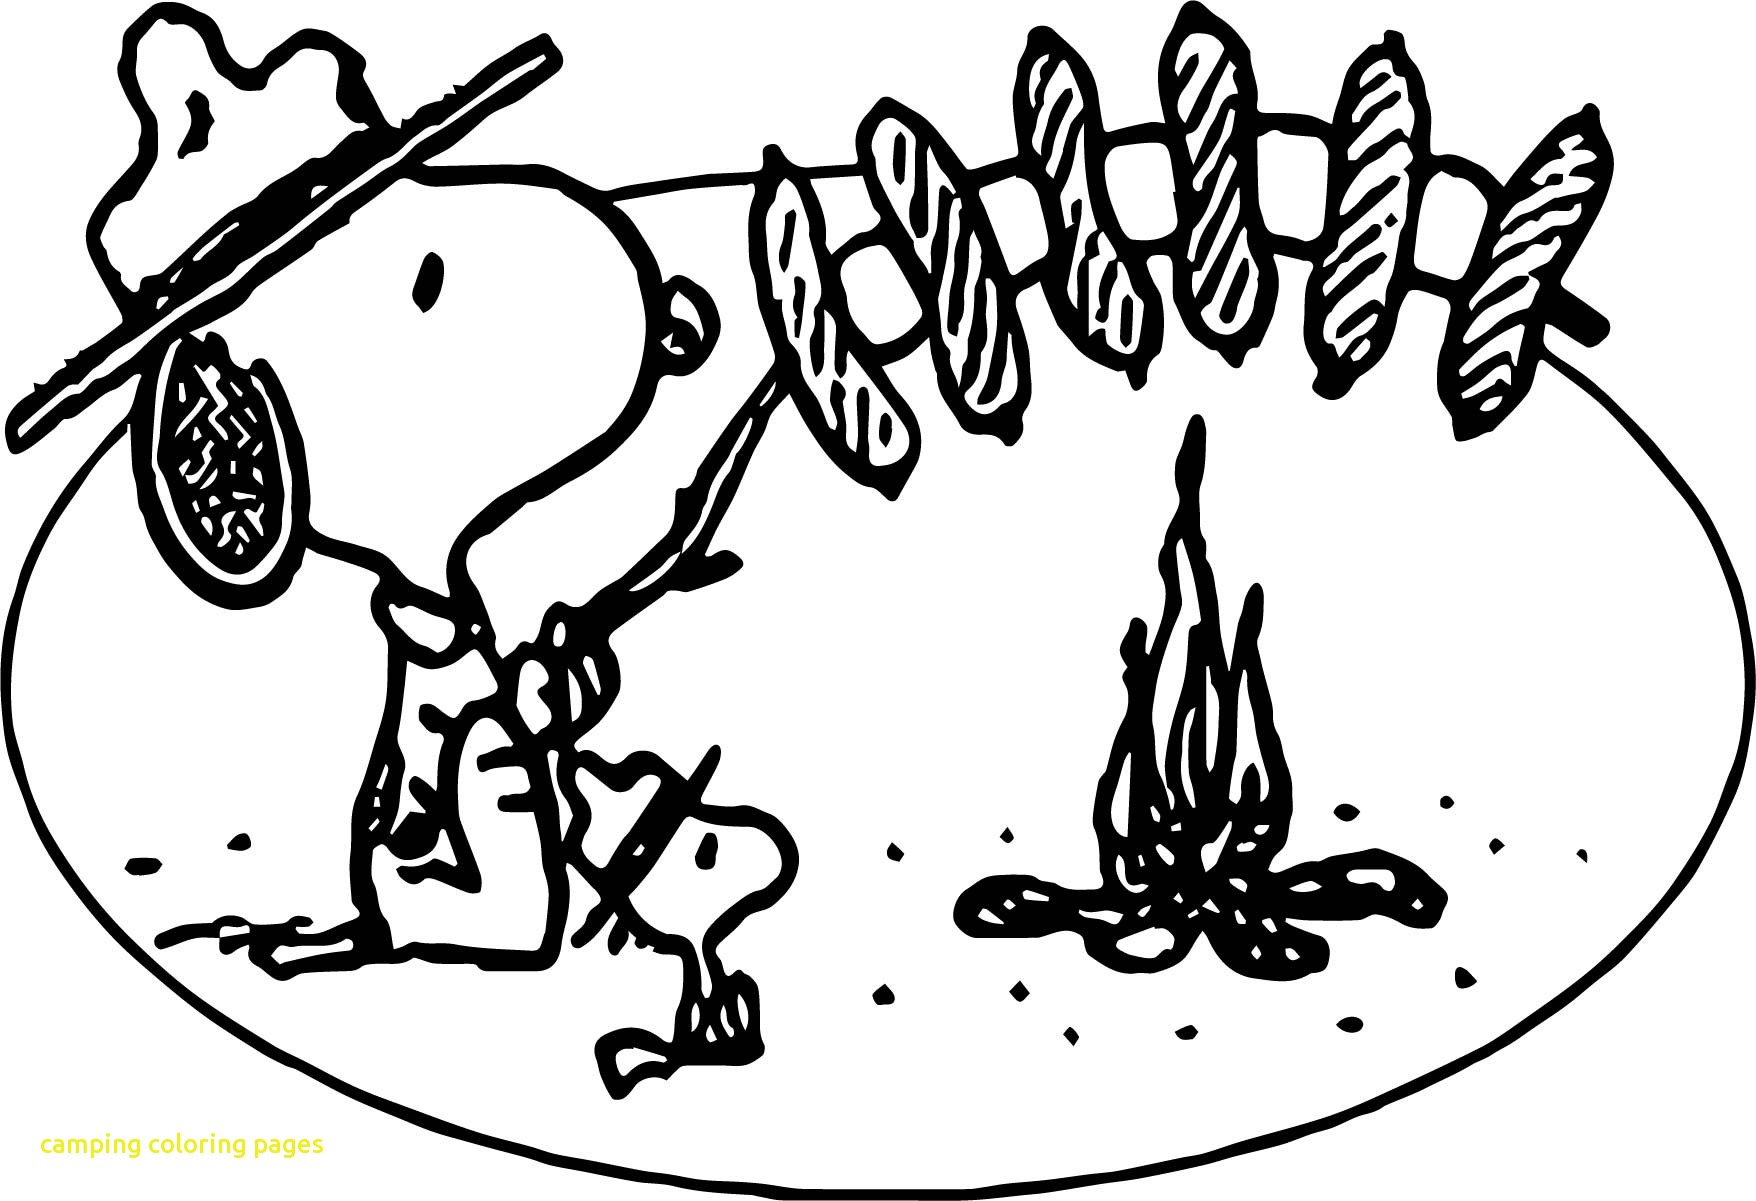 1756x1201 Camping Coloring Pages